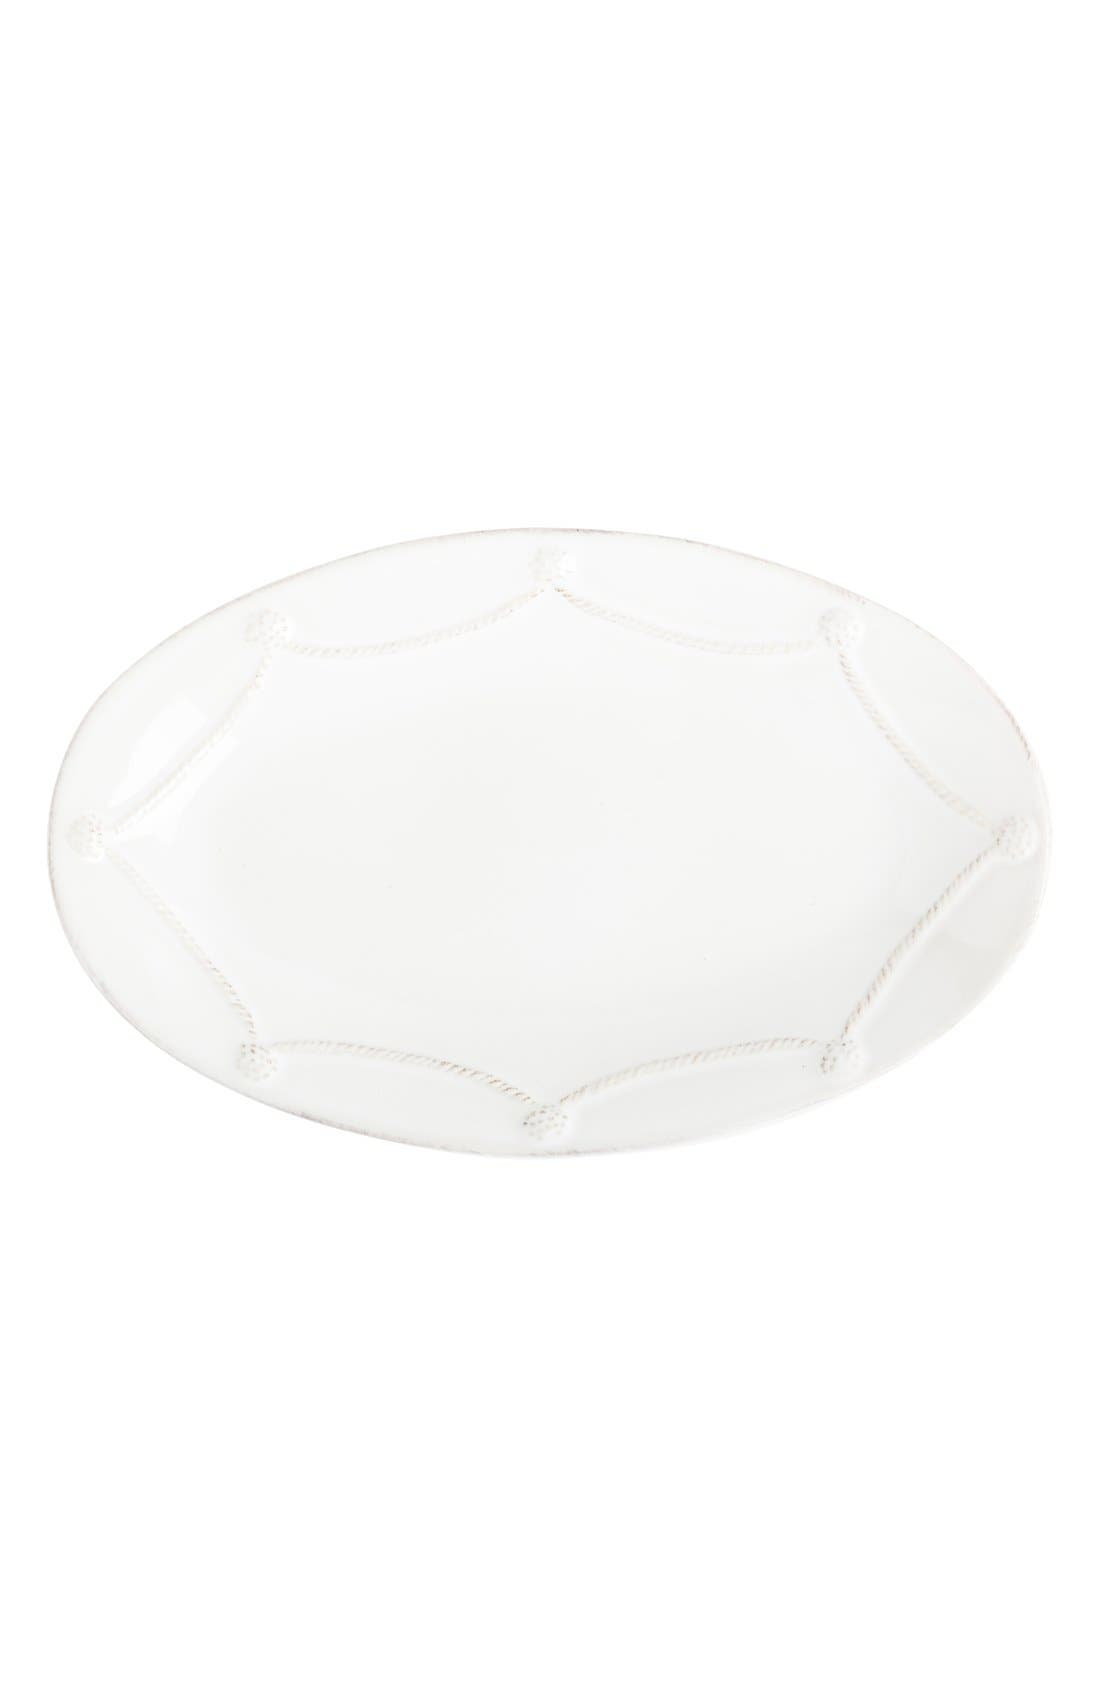 'Berry and Thread' Oval Platter,                             Main thumbnail 1, color,